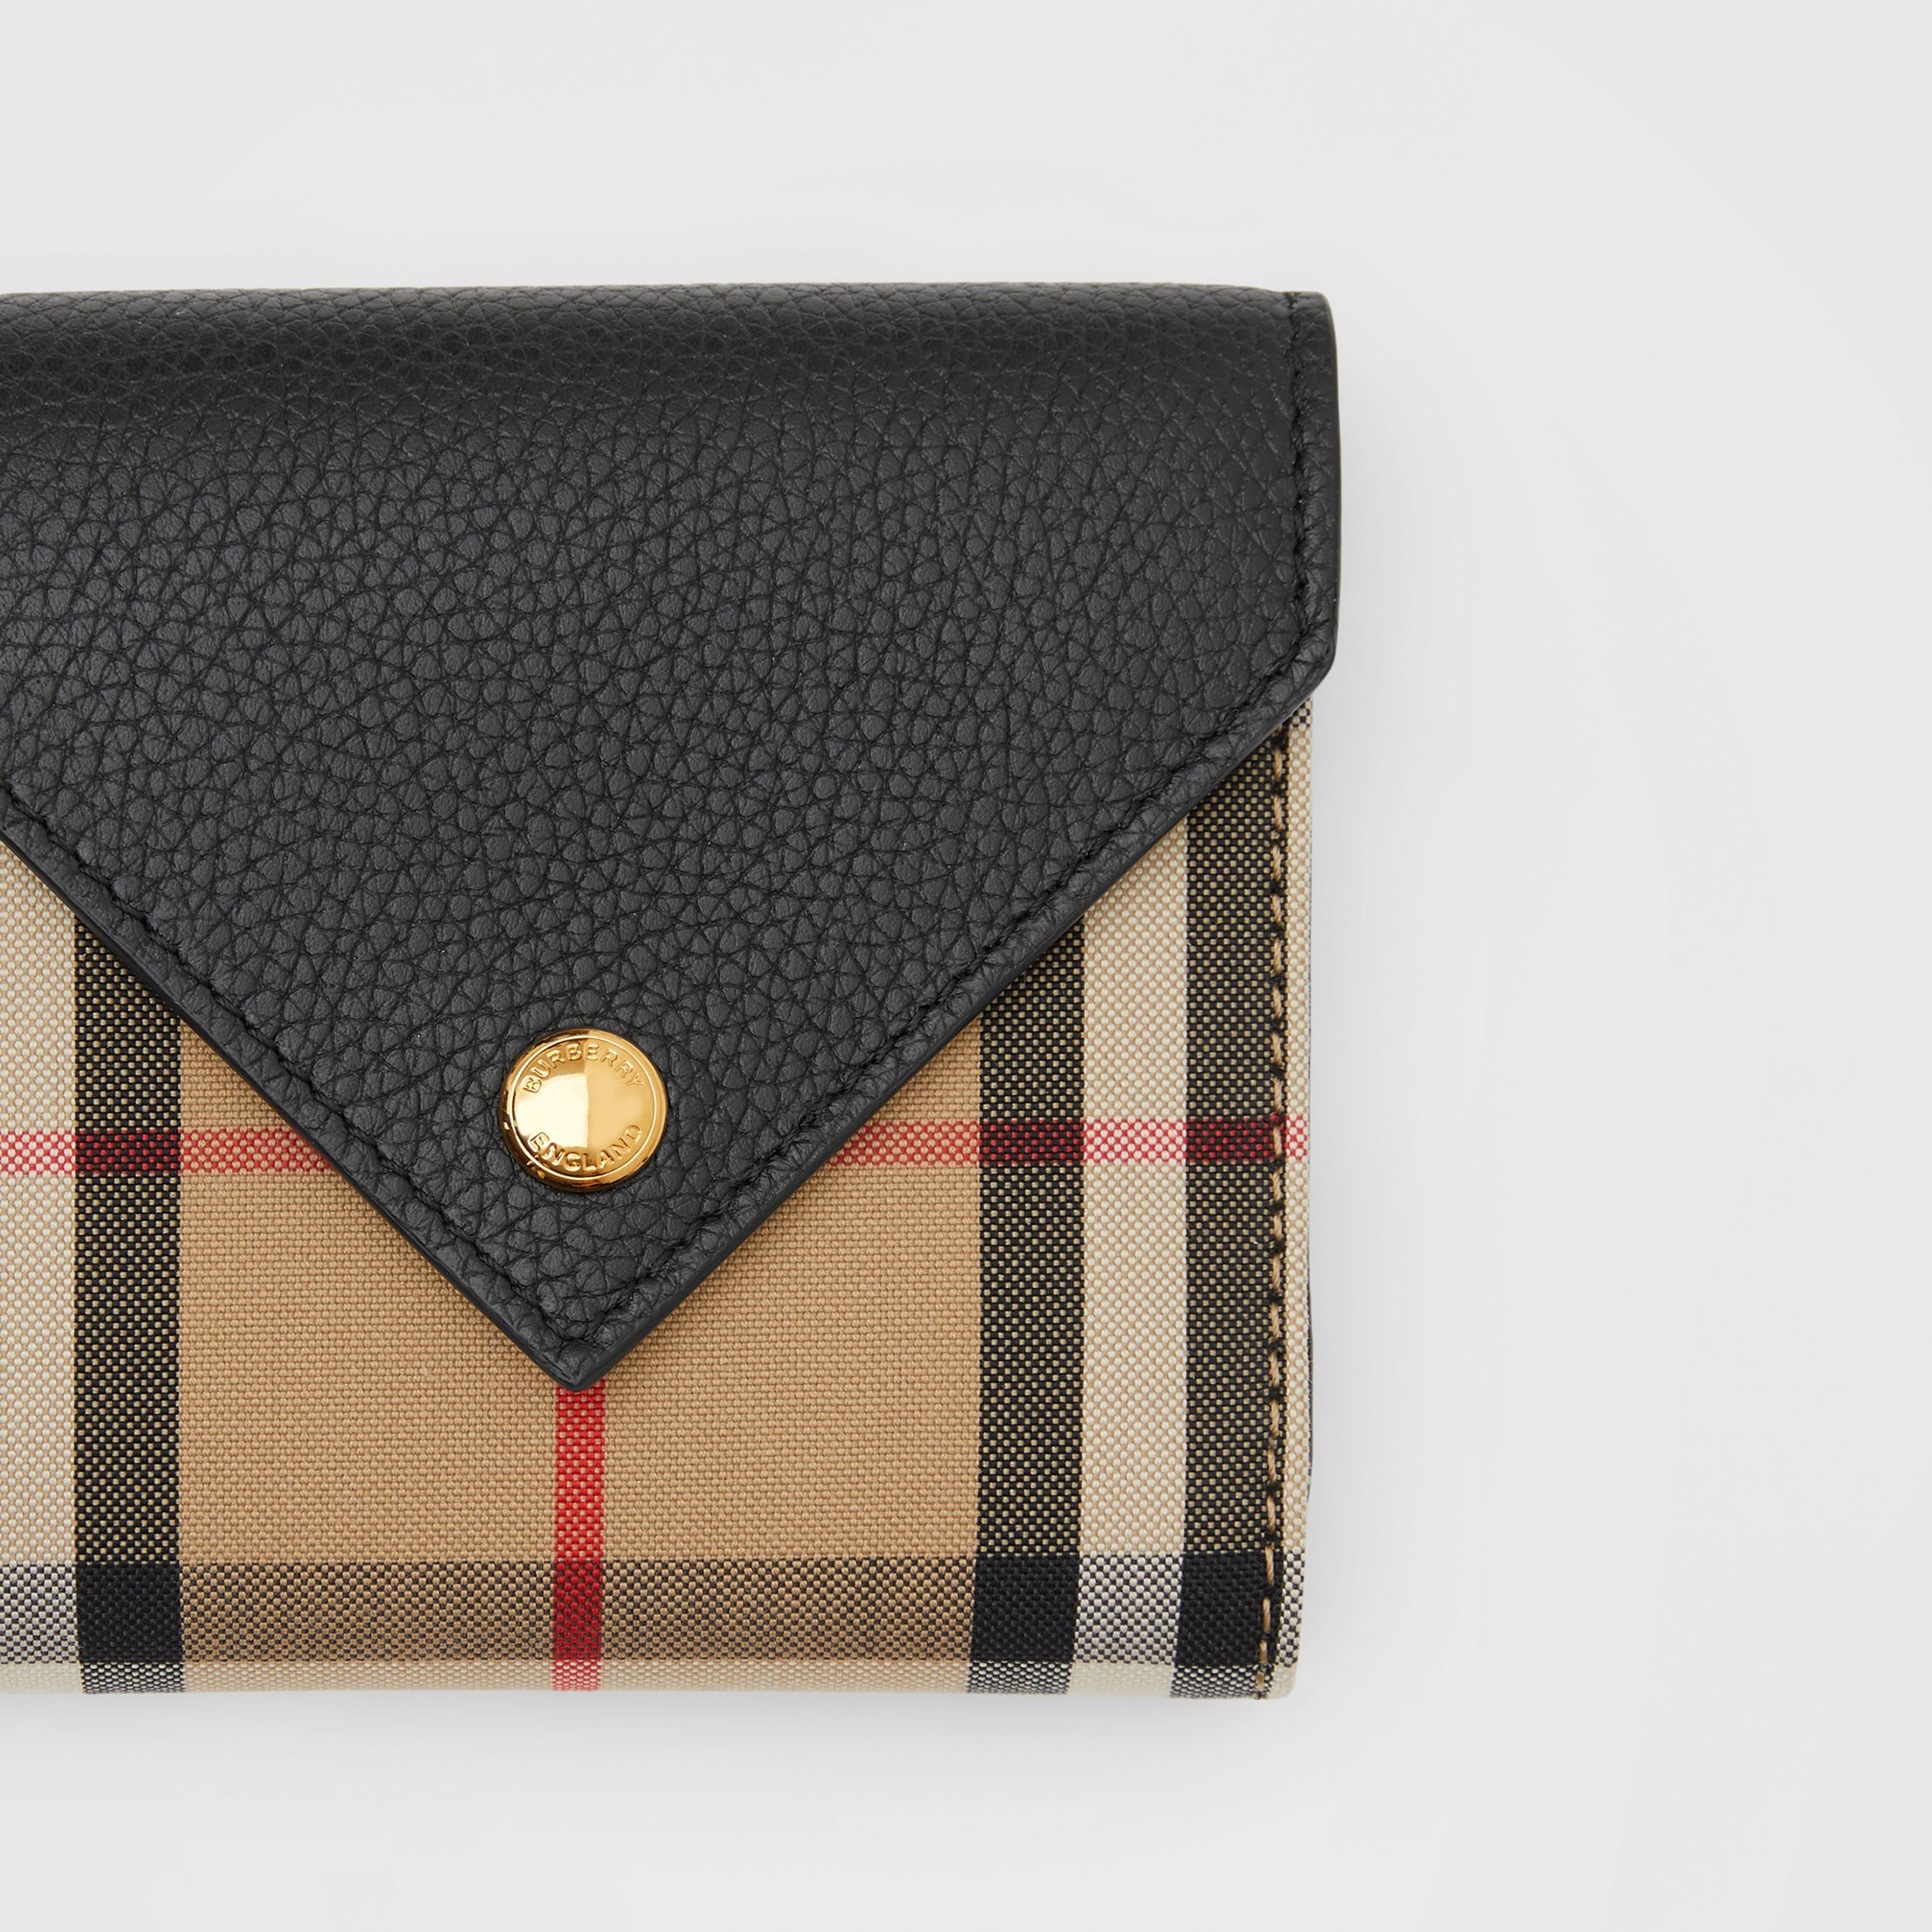 Vintage Check and Grainy Leather Folding Wallet in Black - Women | Burberry Canada - 2